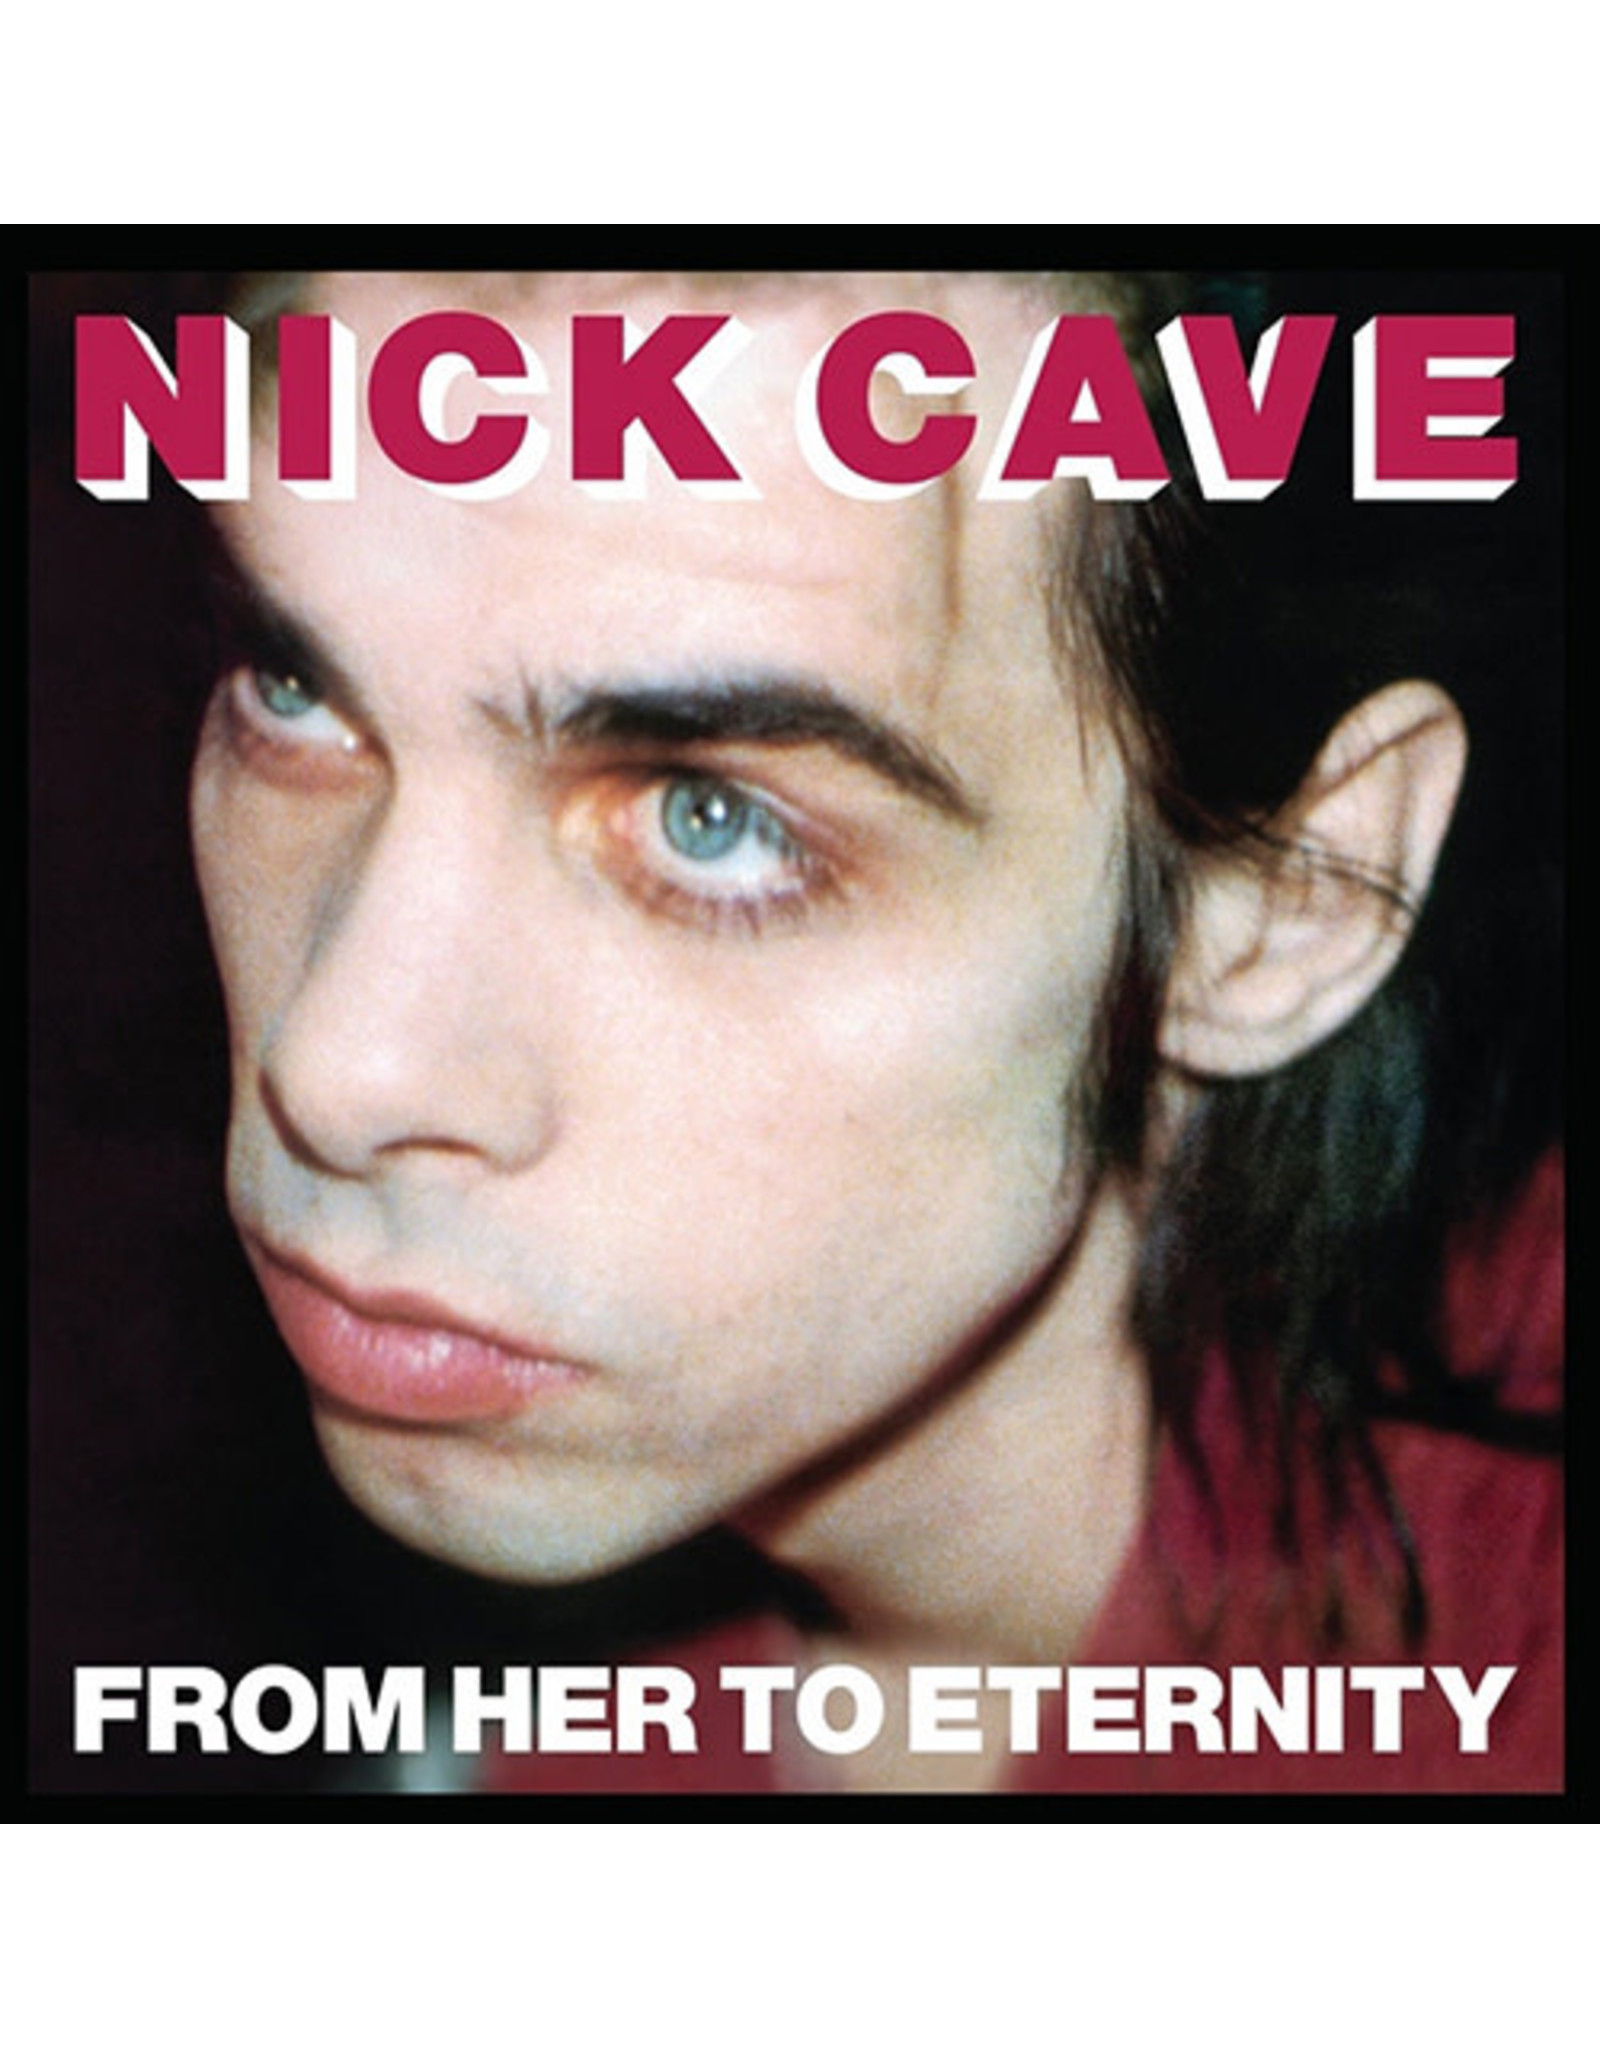 Mute Cave, Nick: From Her to Eternity LP